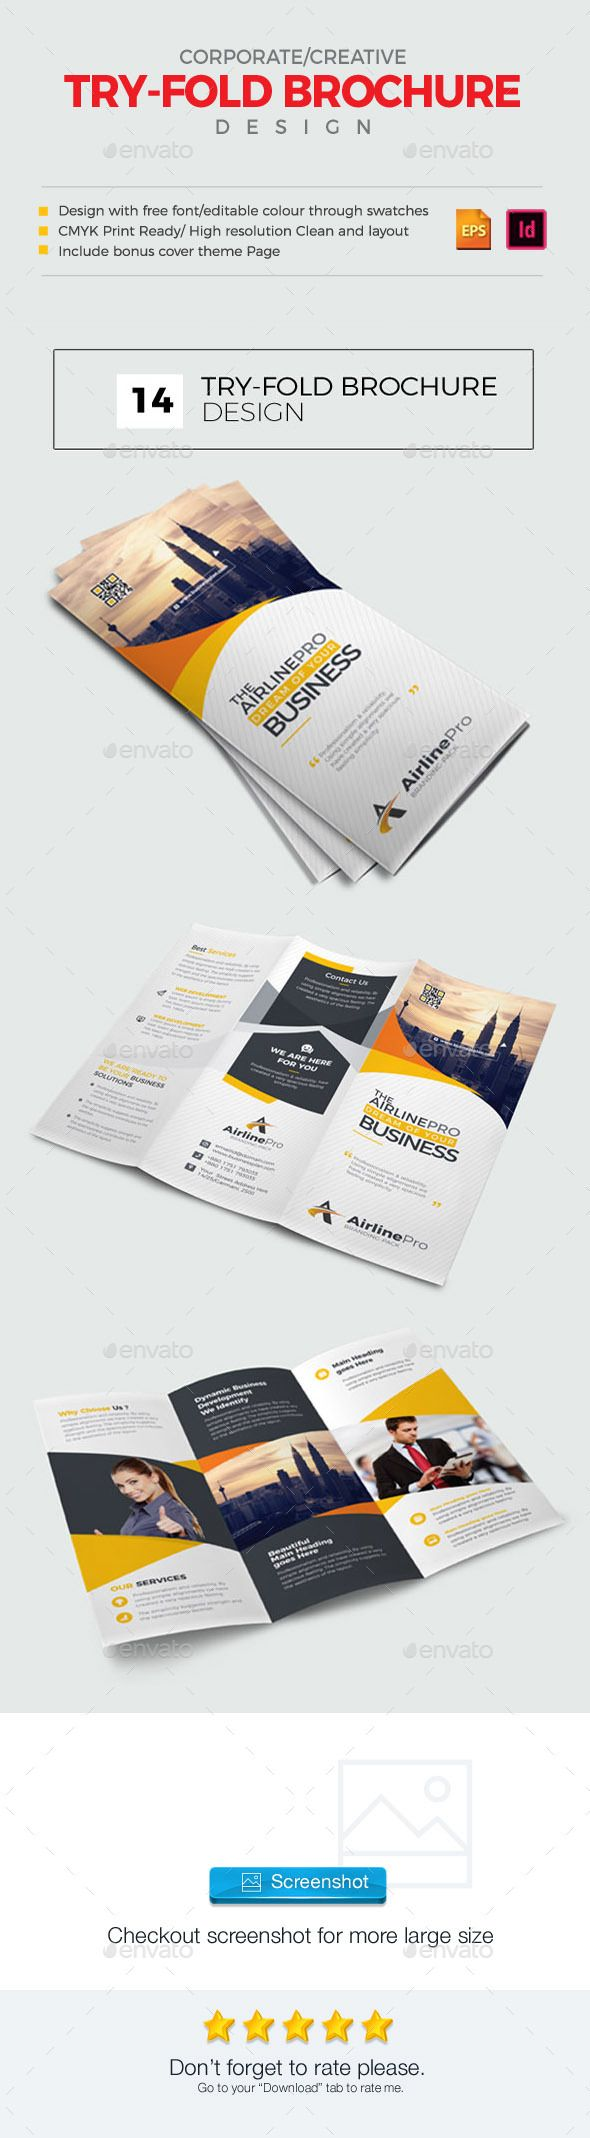 TriFold Brochure Template Vector Eps Indesign Indd Design